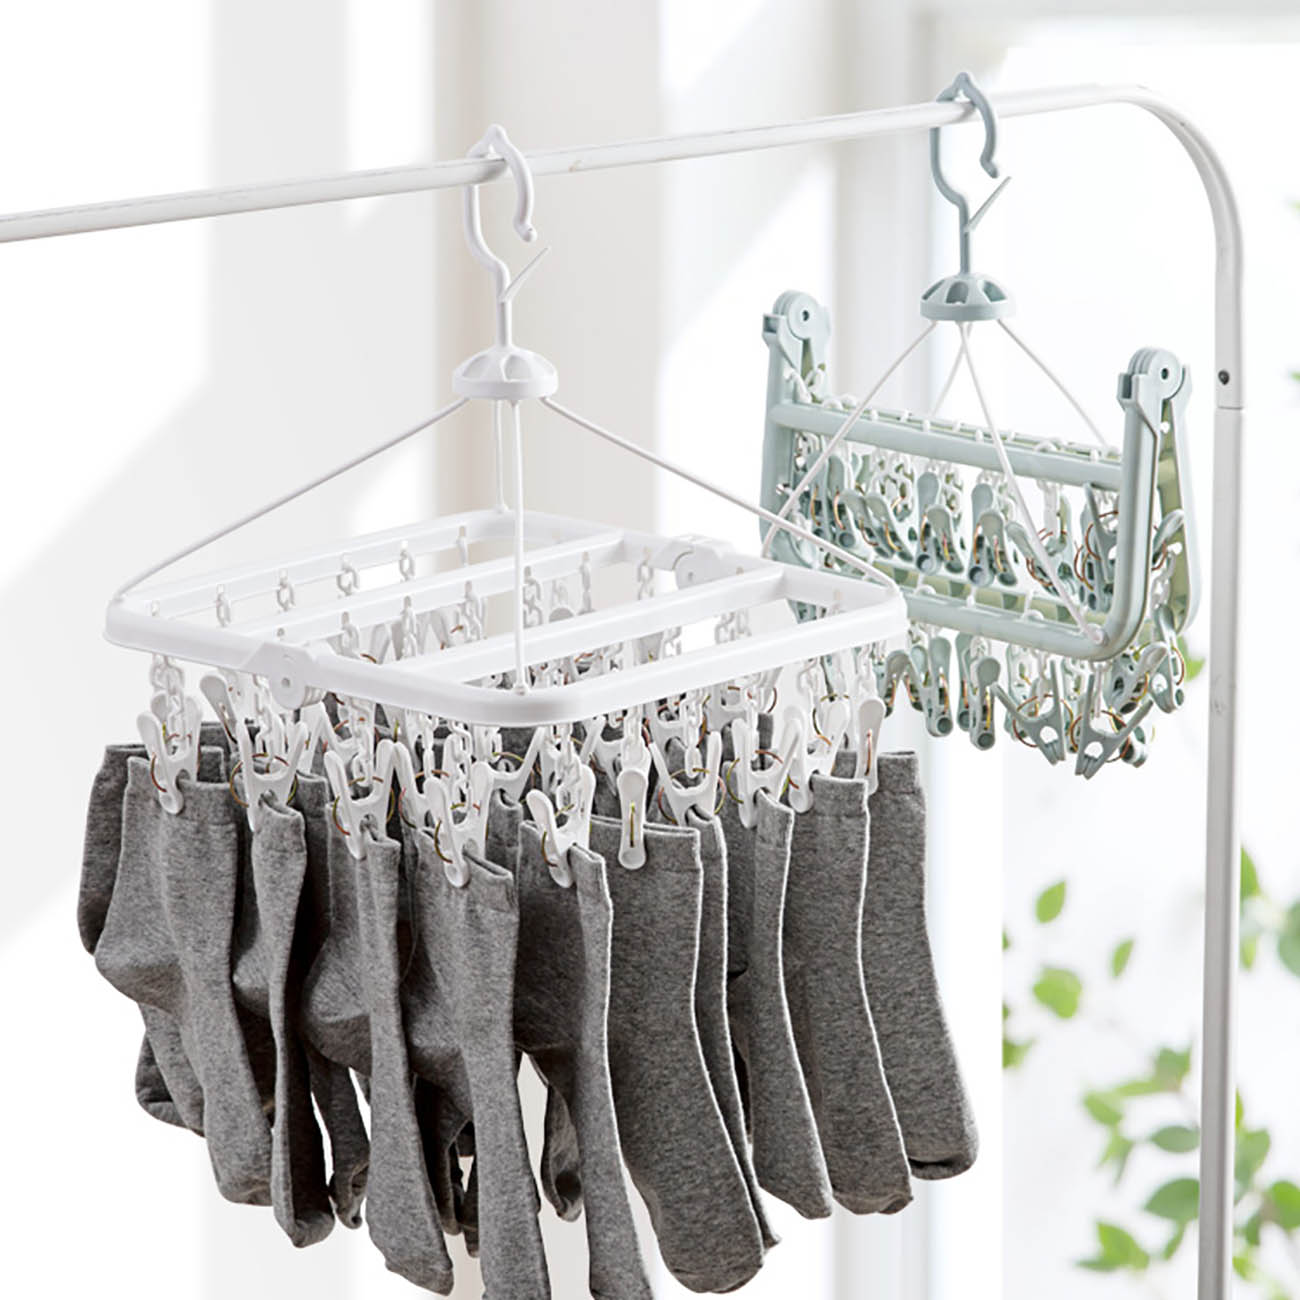 OTHERHOUSE 32 Clips Foldable Clothing Rack Laundry Clothes Hanger Rotatable Drying Rack For Bra Socks Underware Clothespin